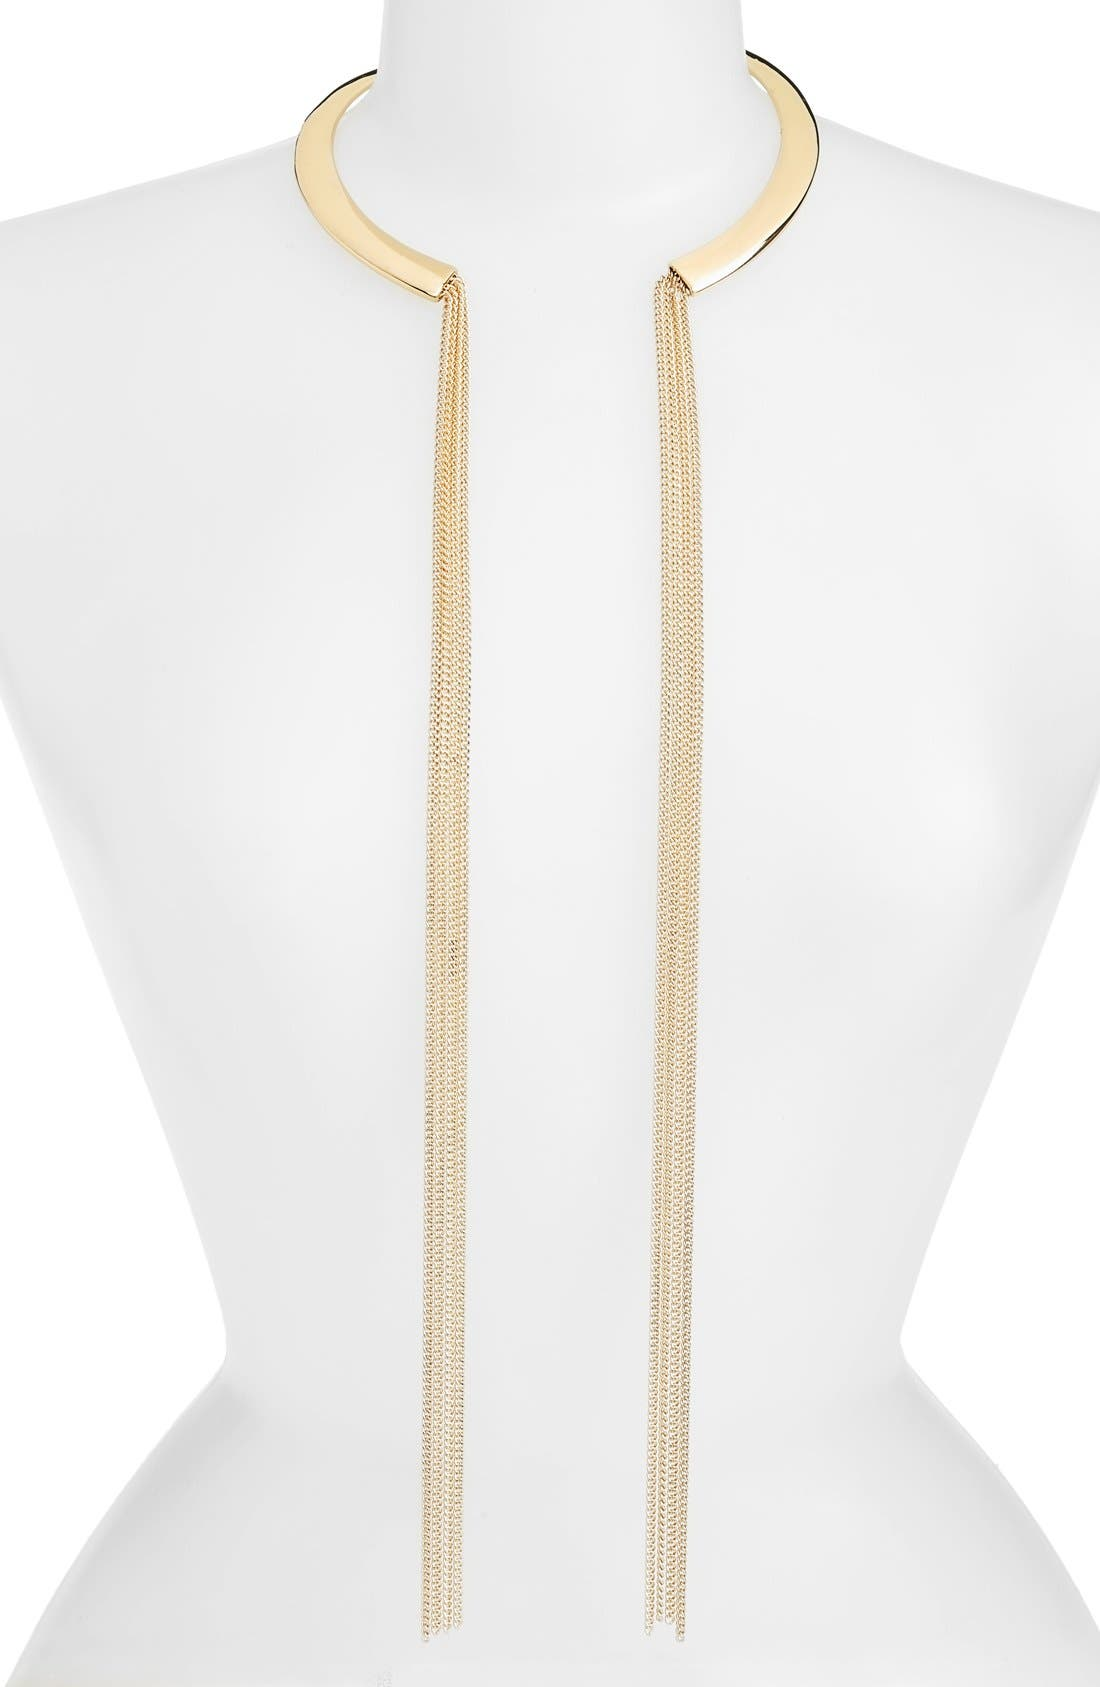 Alternate Image 1 Selected - Nordstrom Chain Tassel Collar Necklace